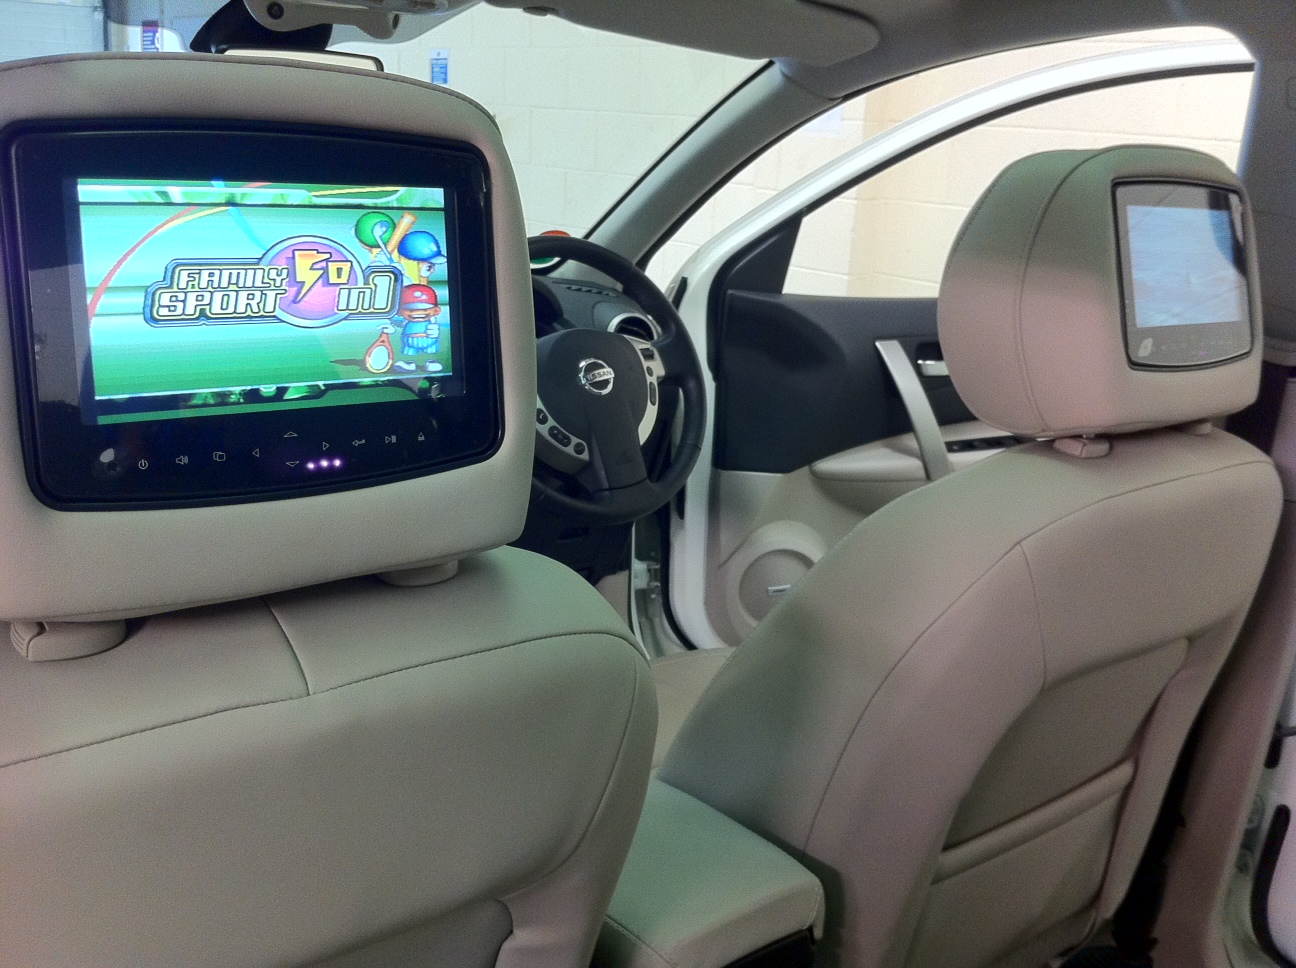 Nissan Quashqai With Rosen Twin Dvds And Games